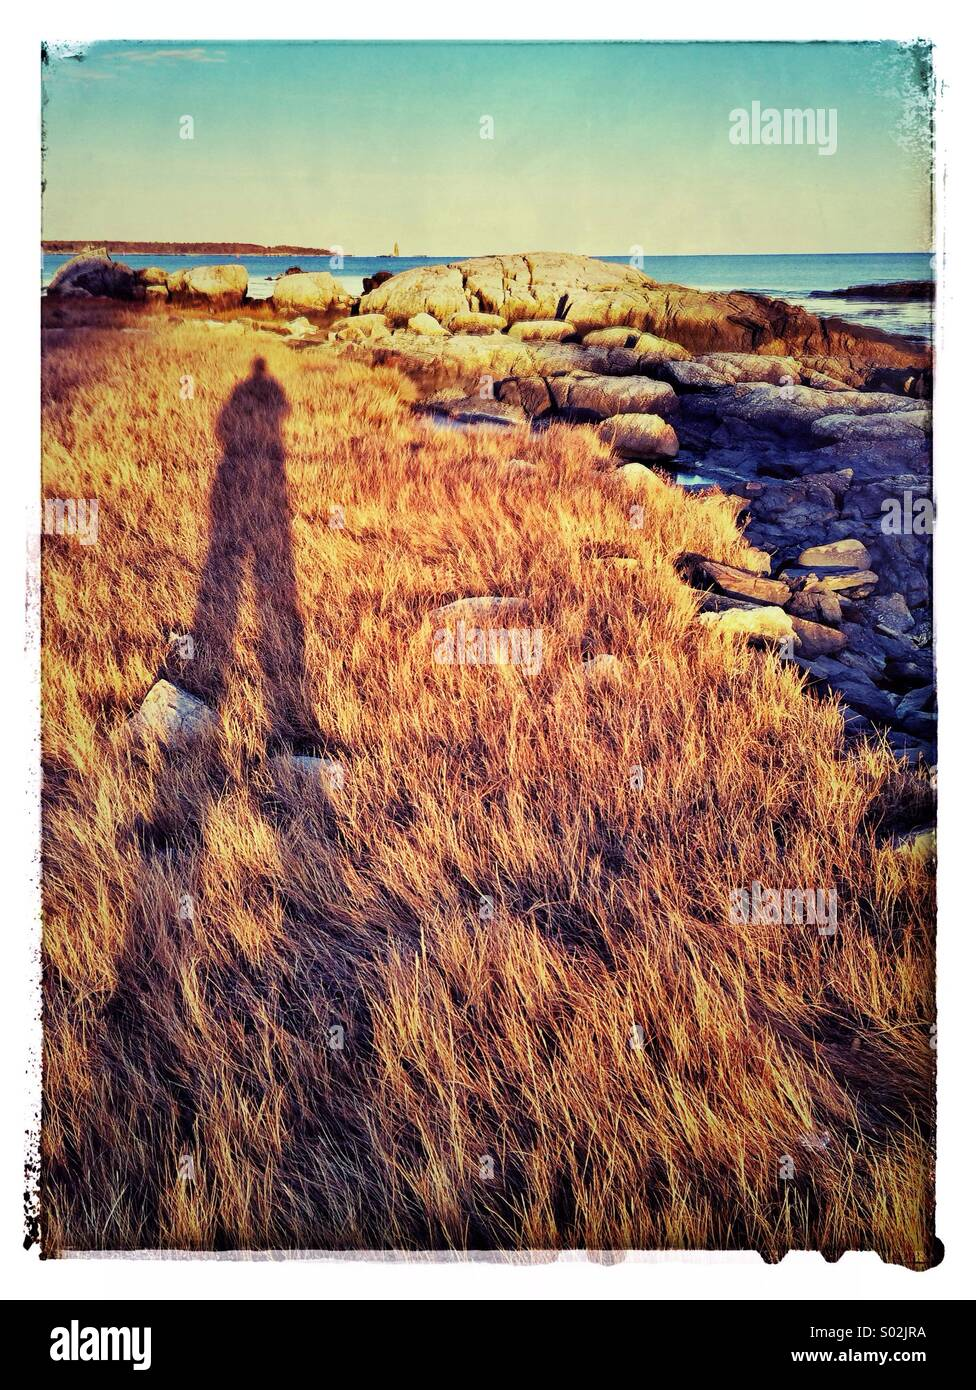 A man's shadow stretches over marsh grass in Rye, New Hampshire. Odiorne Point State Park. - Stock Image